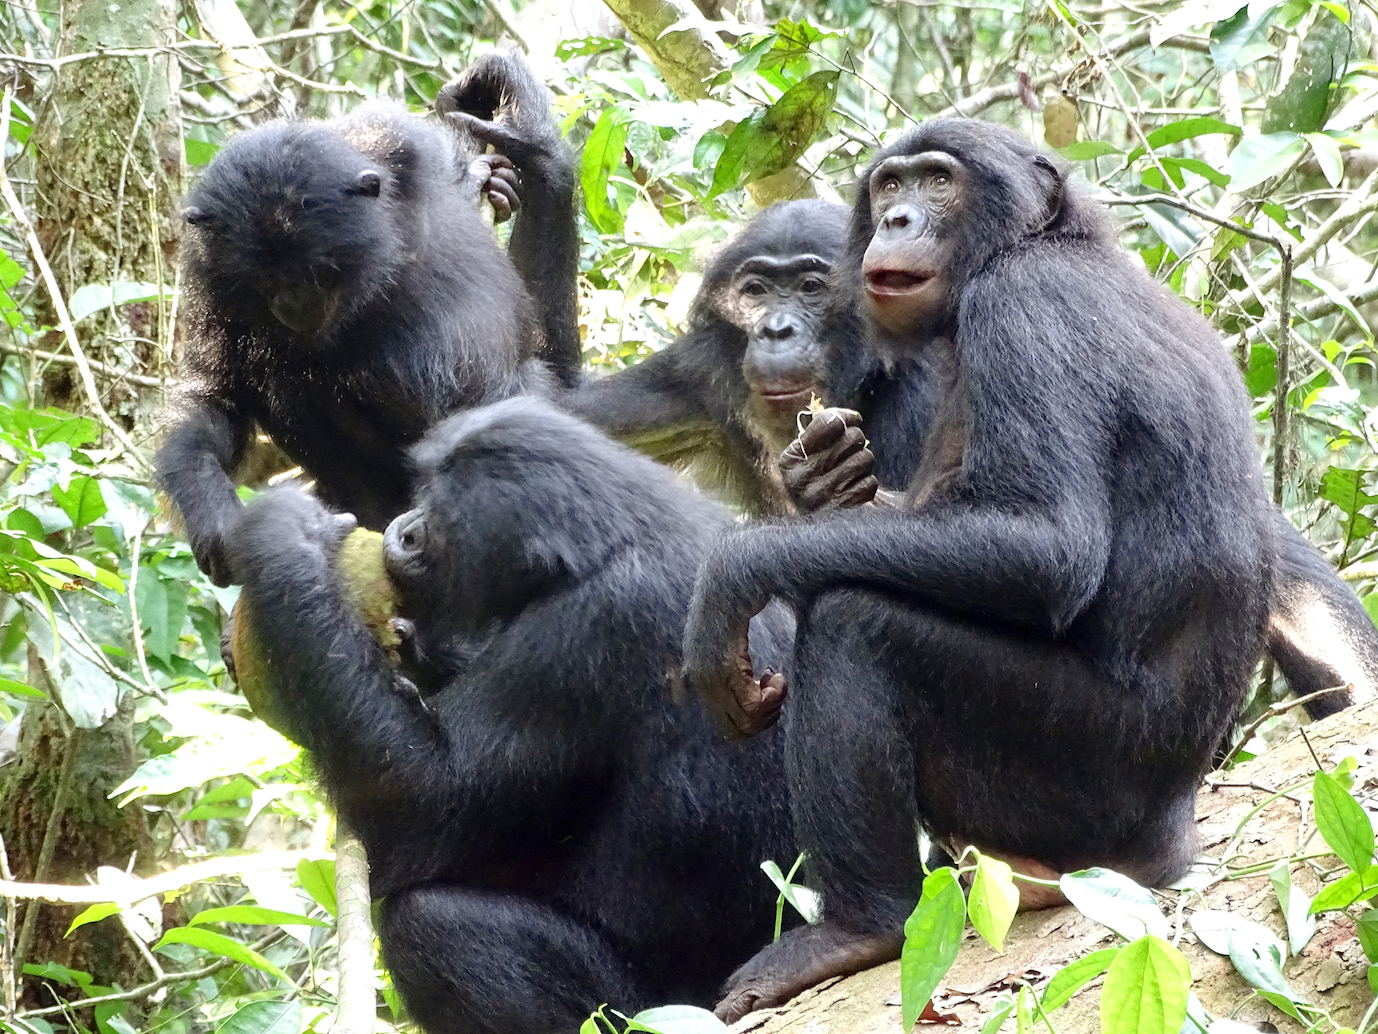 For the first time, researchers have discovered that bonobos share their food with members of other social groups as well.